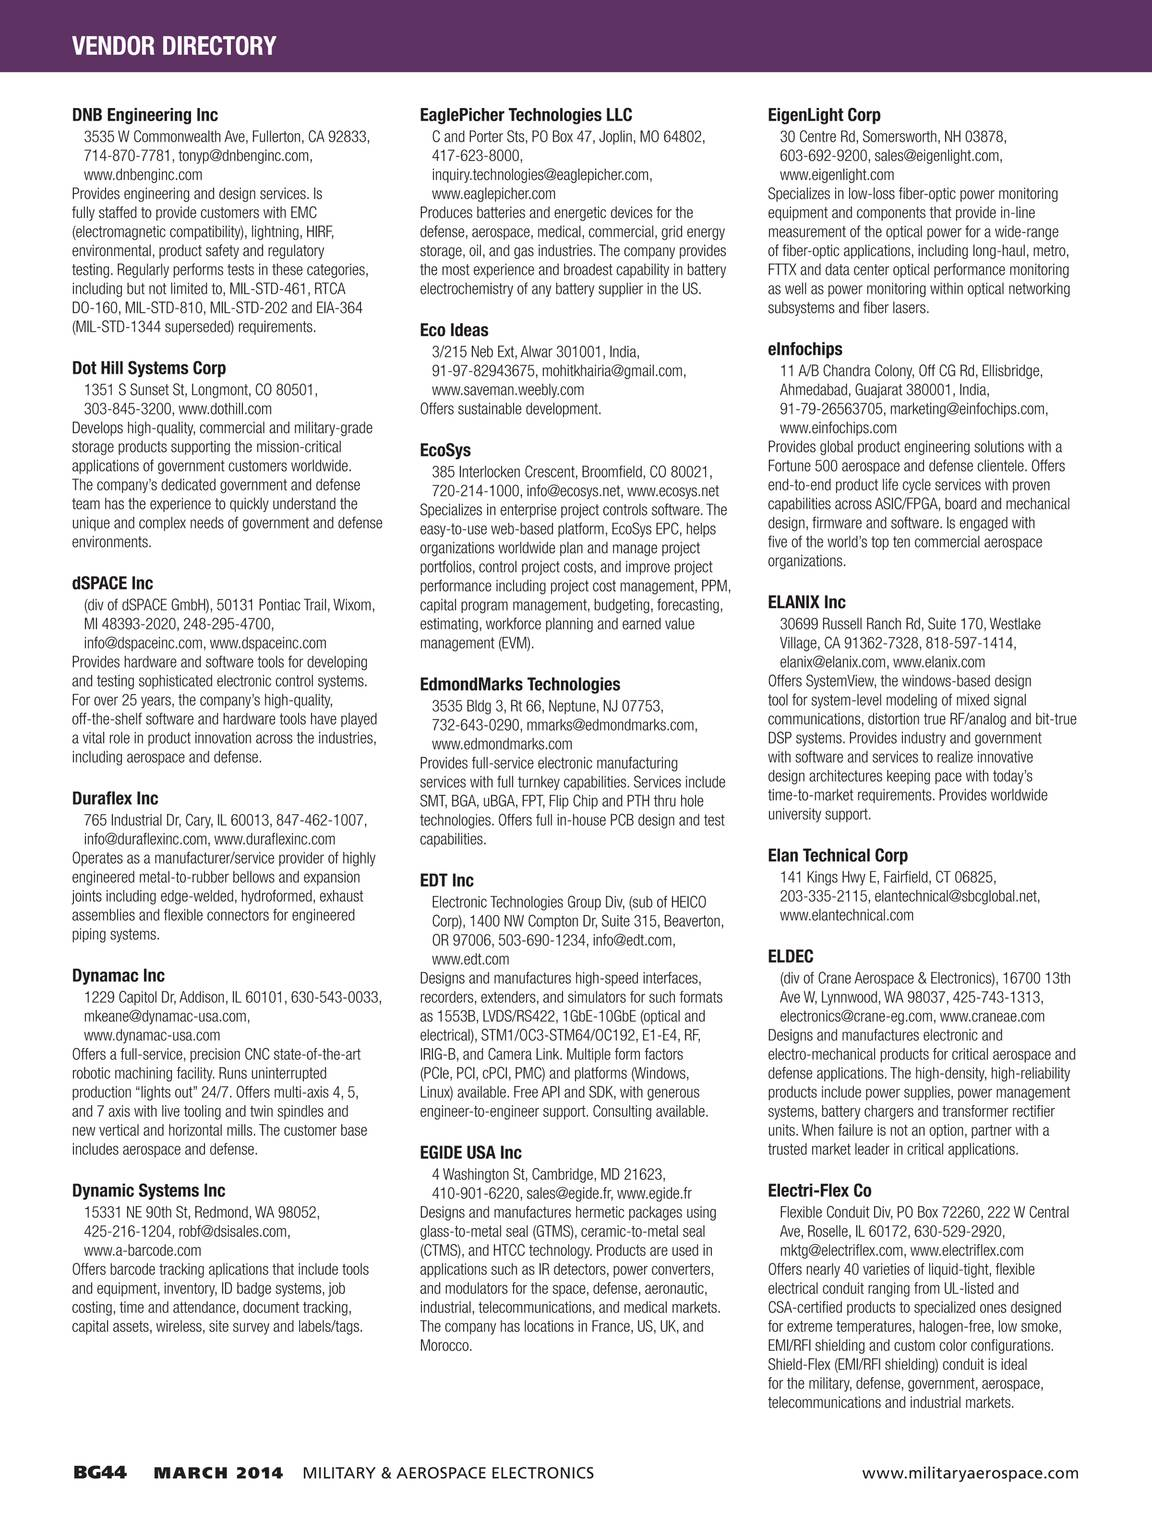 Military & Aerospace Electronics - Buyers Guide 2014 - page BG45